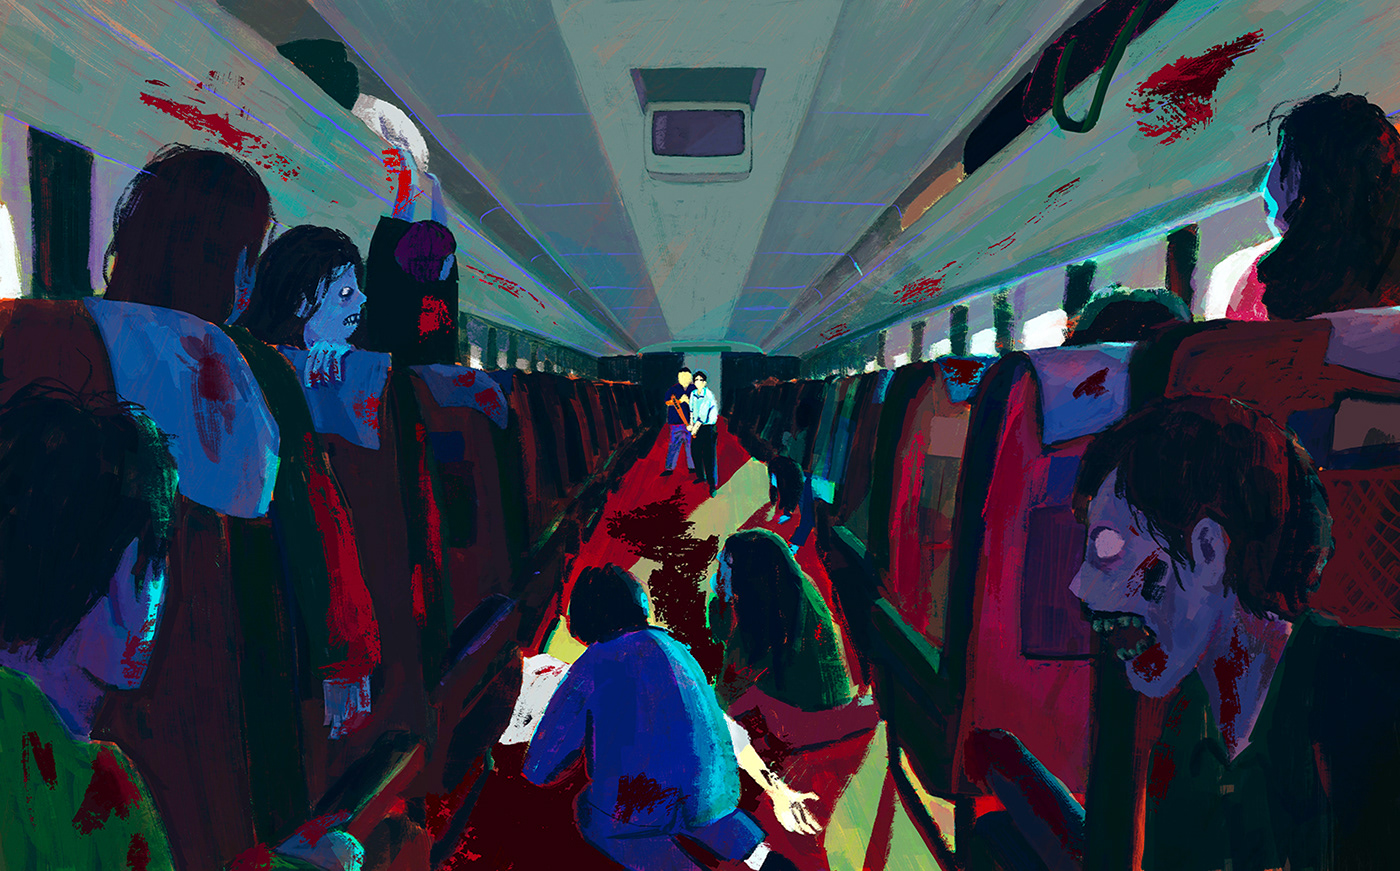 Zombie apocalypse in a long-distance train. Two men are at the back trying to survive.